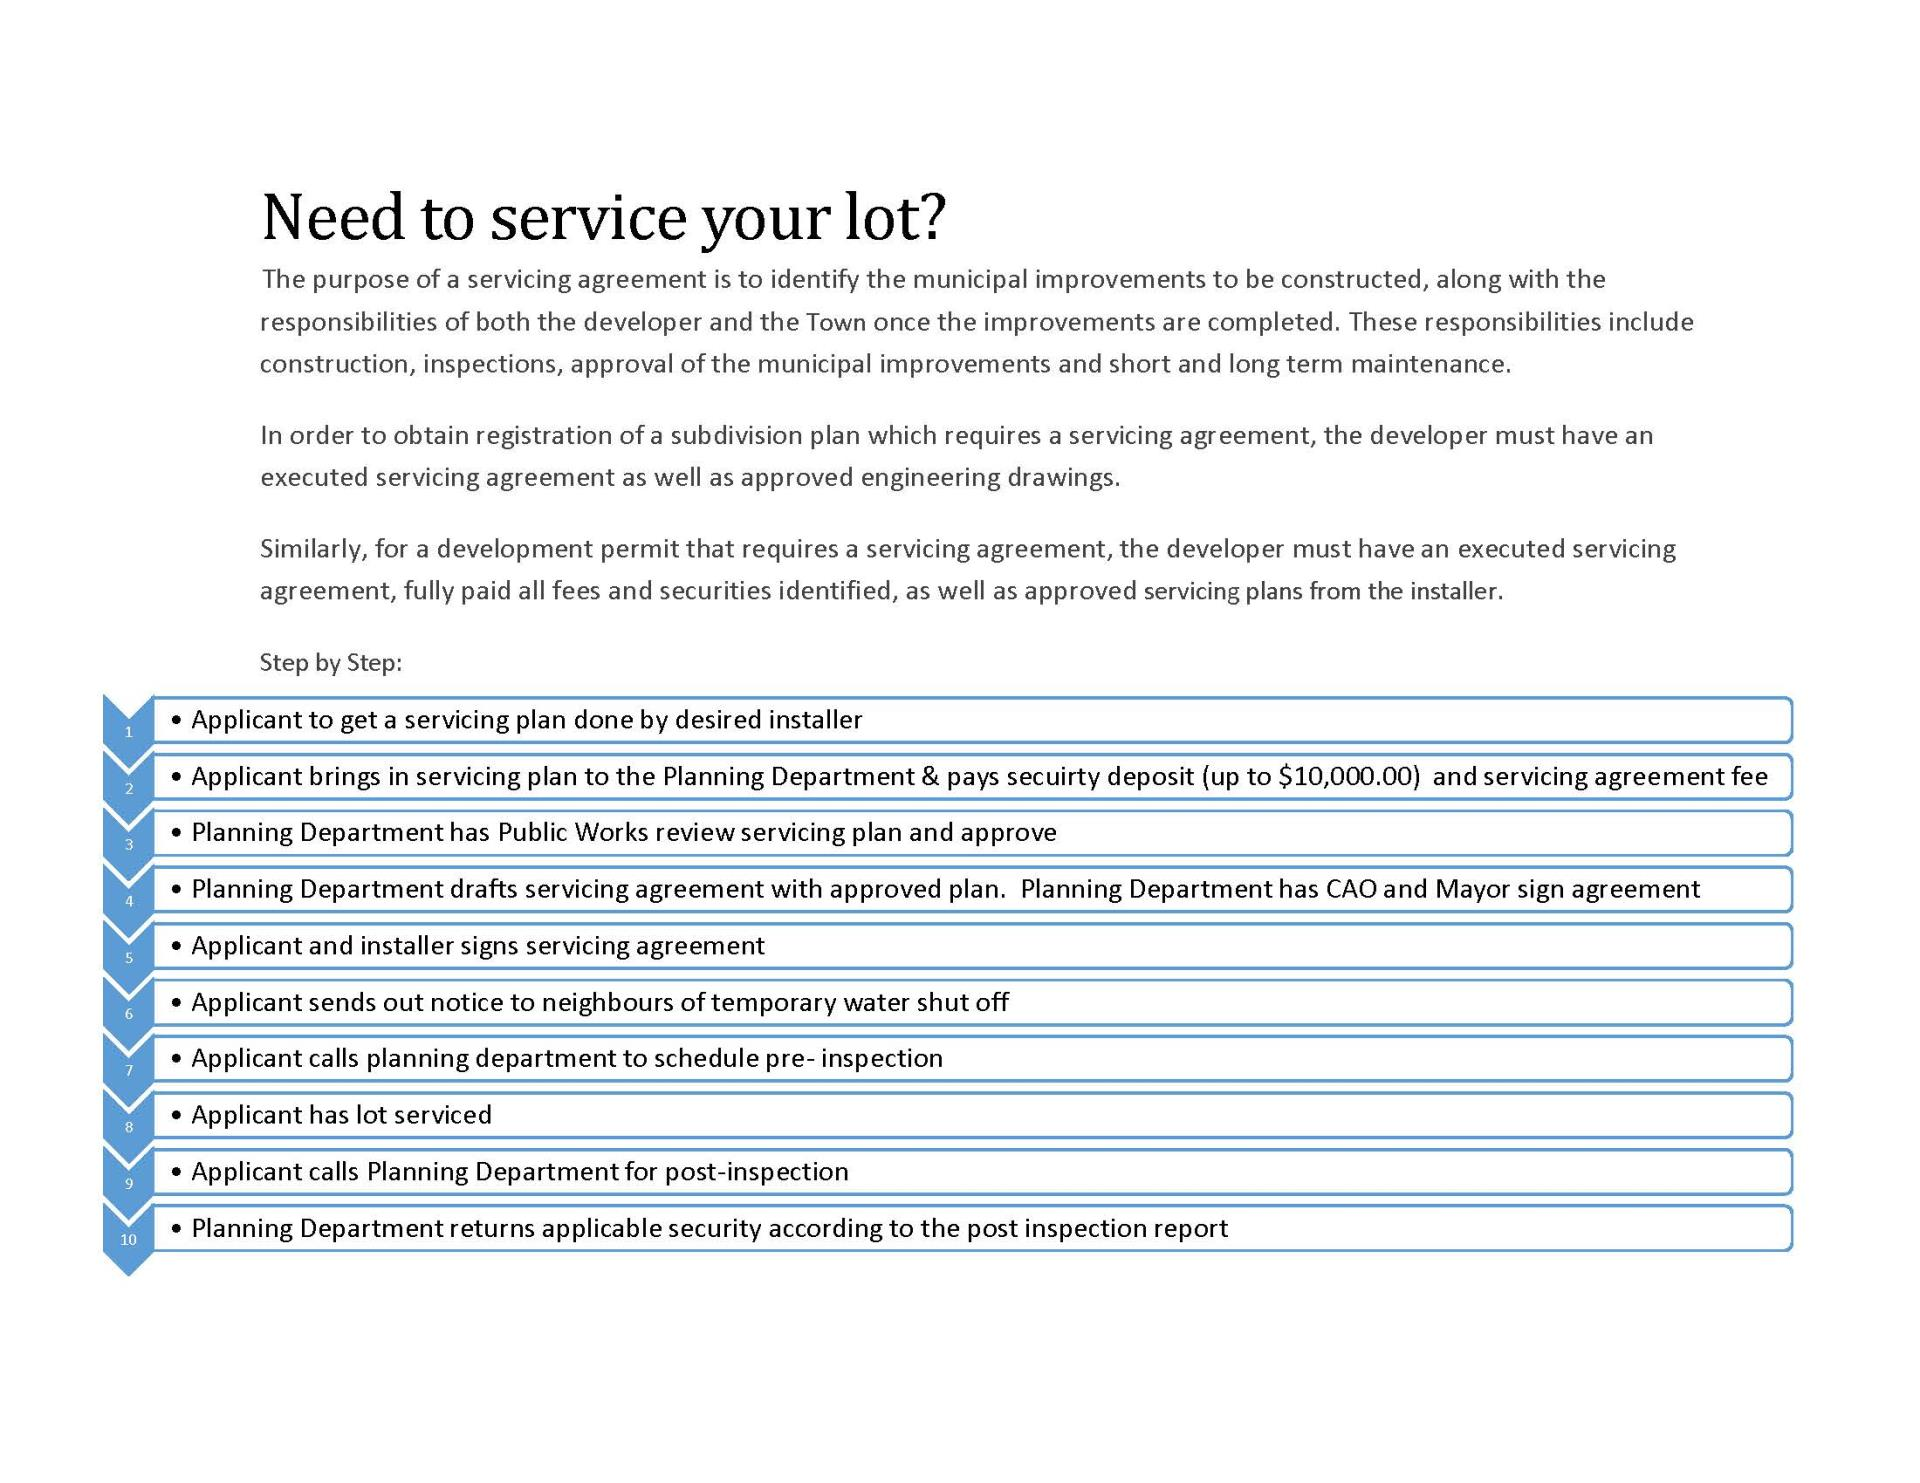 Need to service your lot step-by-step chart